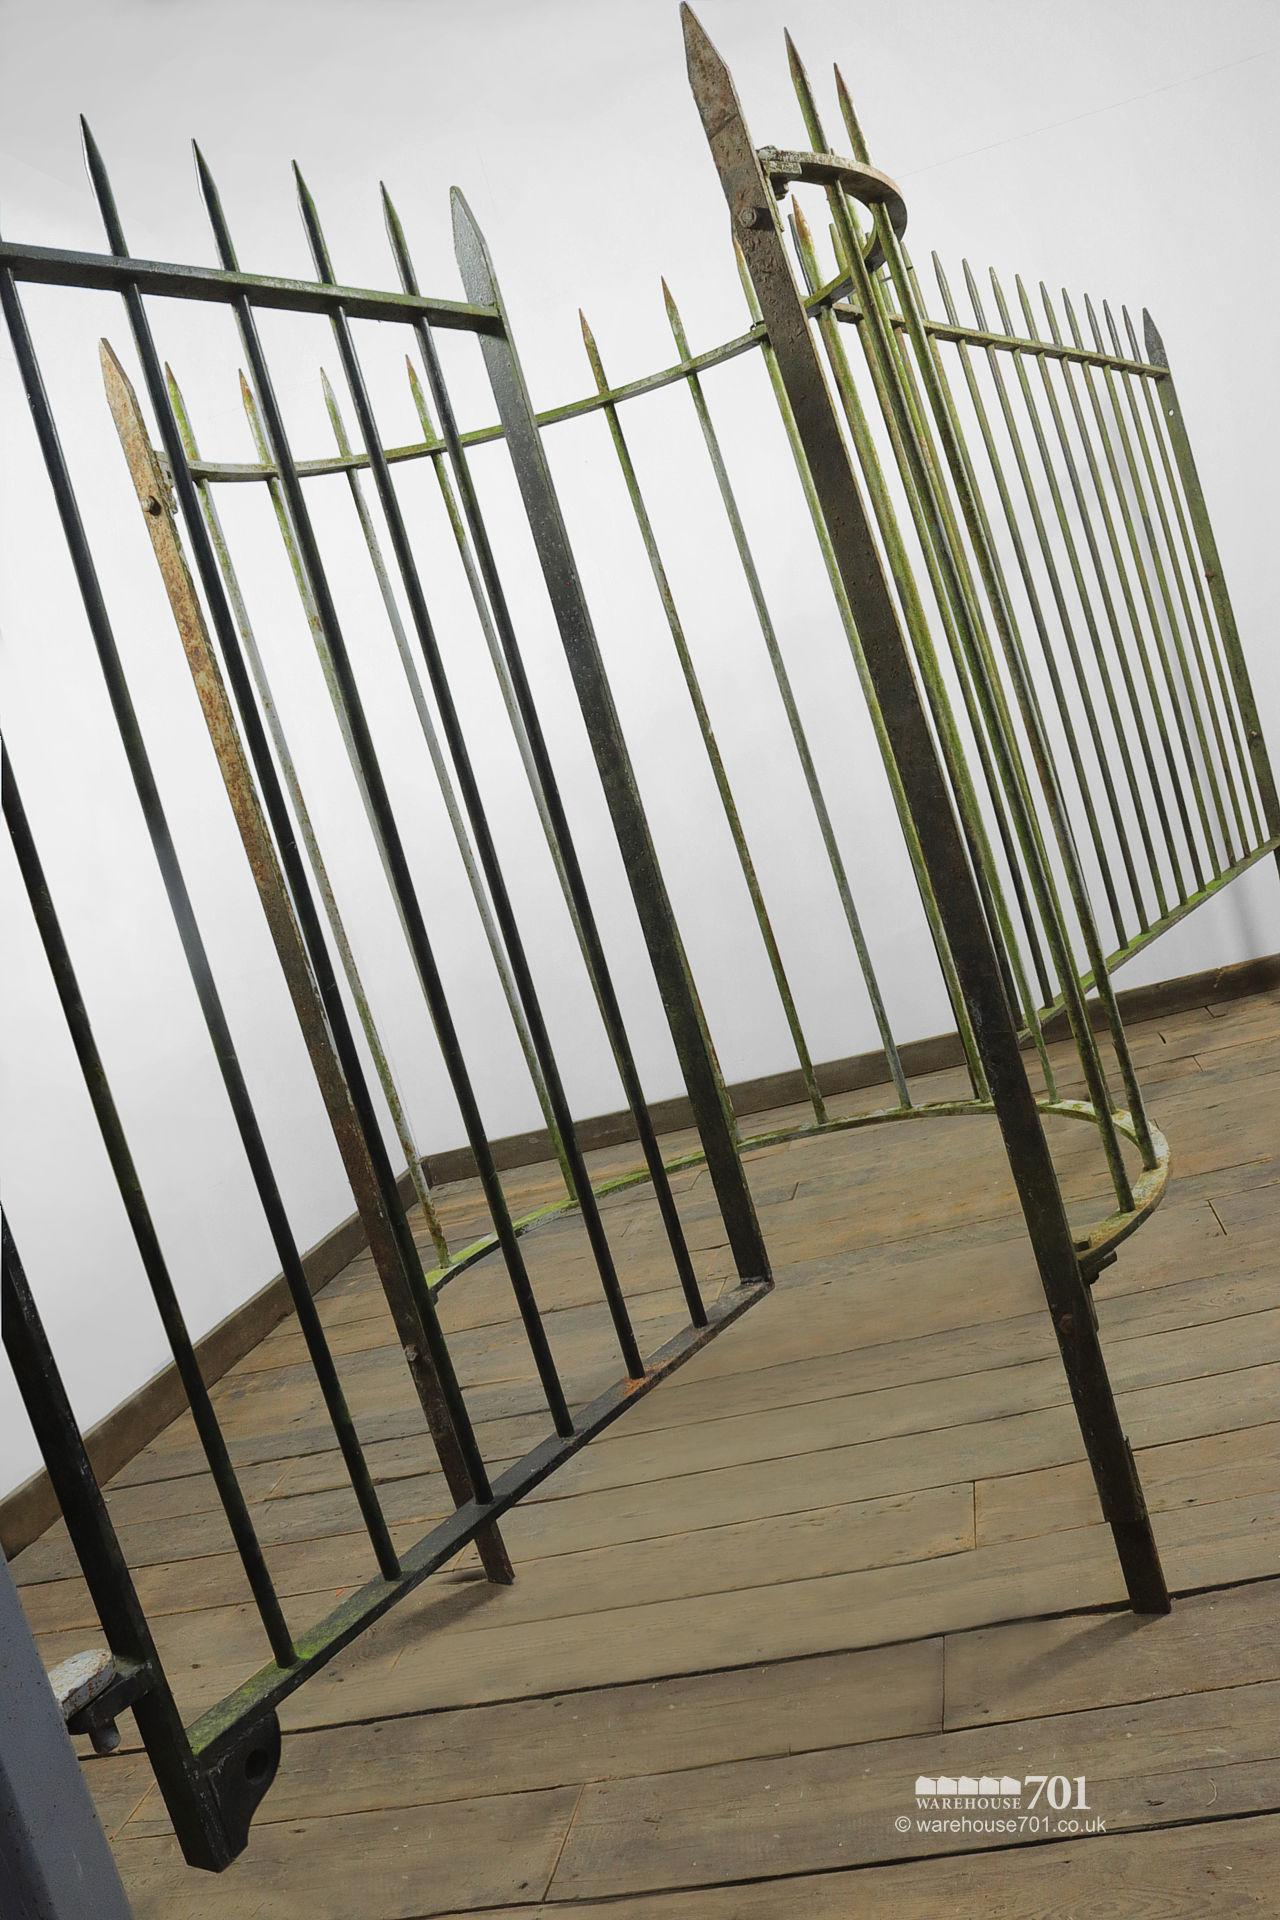 Reclaimed Wrought Iron Kissing Gate and Railings